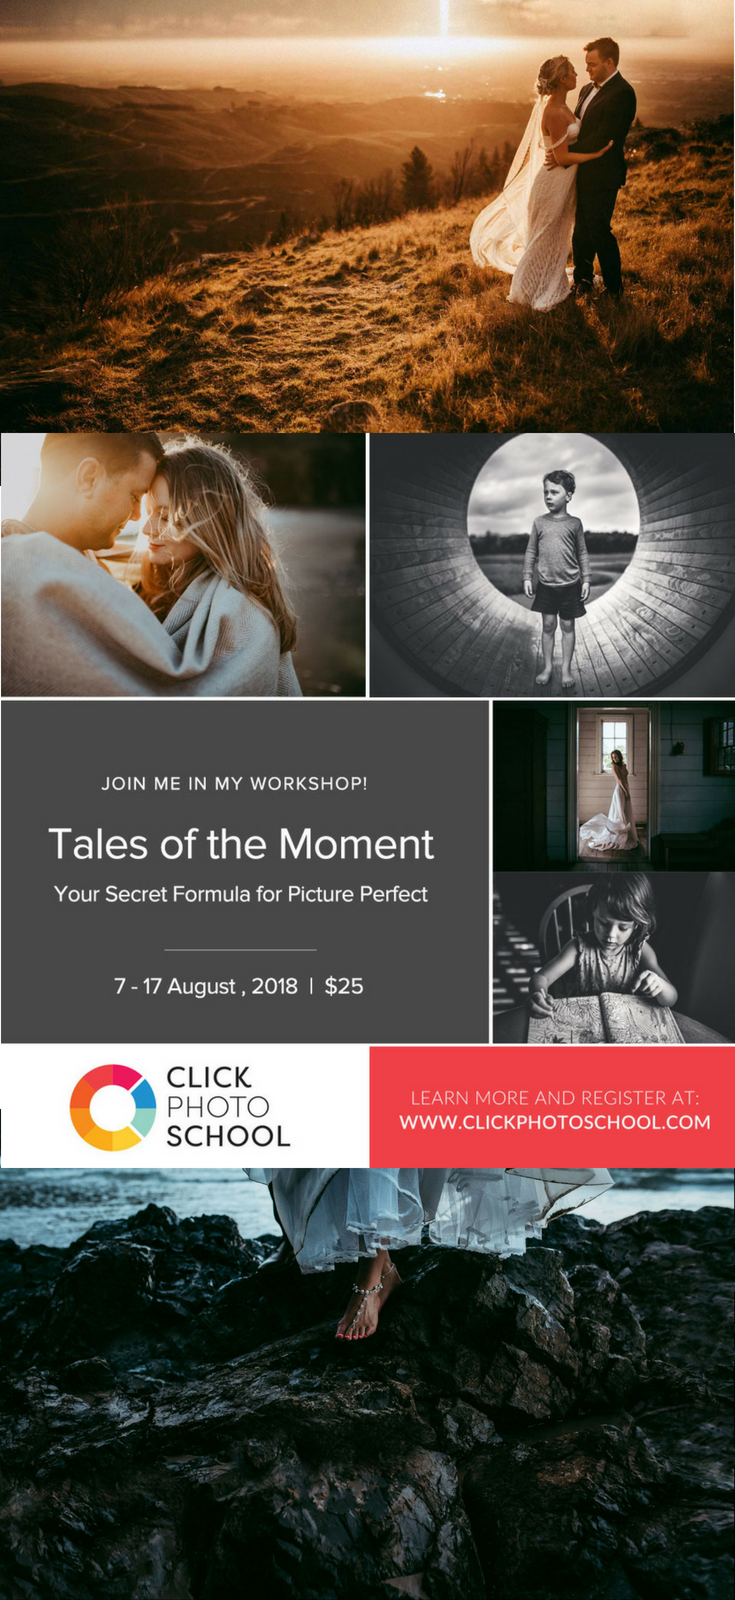 Click Photo School | Education for photographers | Photography workshop | Online course - wedding | family | newborn | maternity | couples- engagement